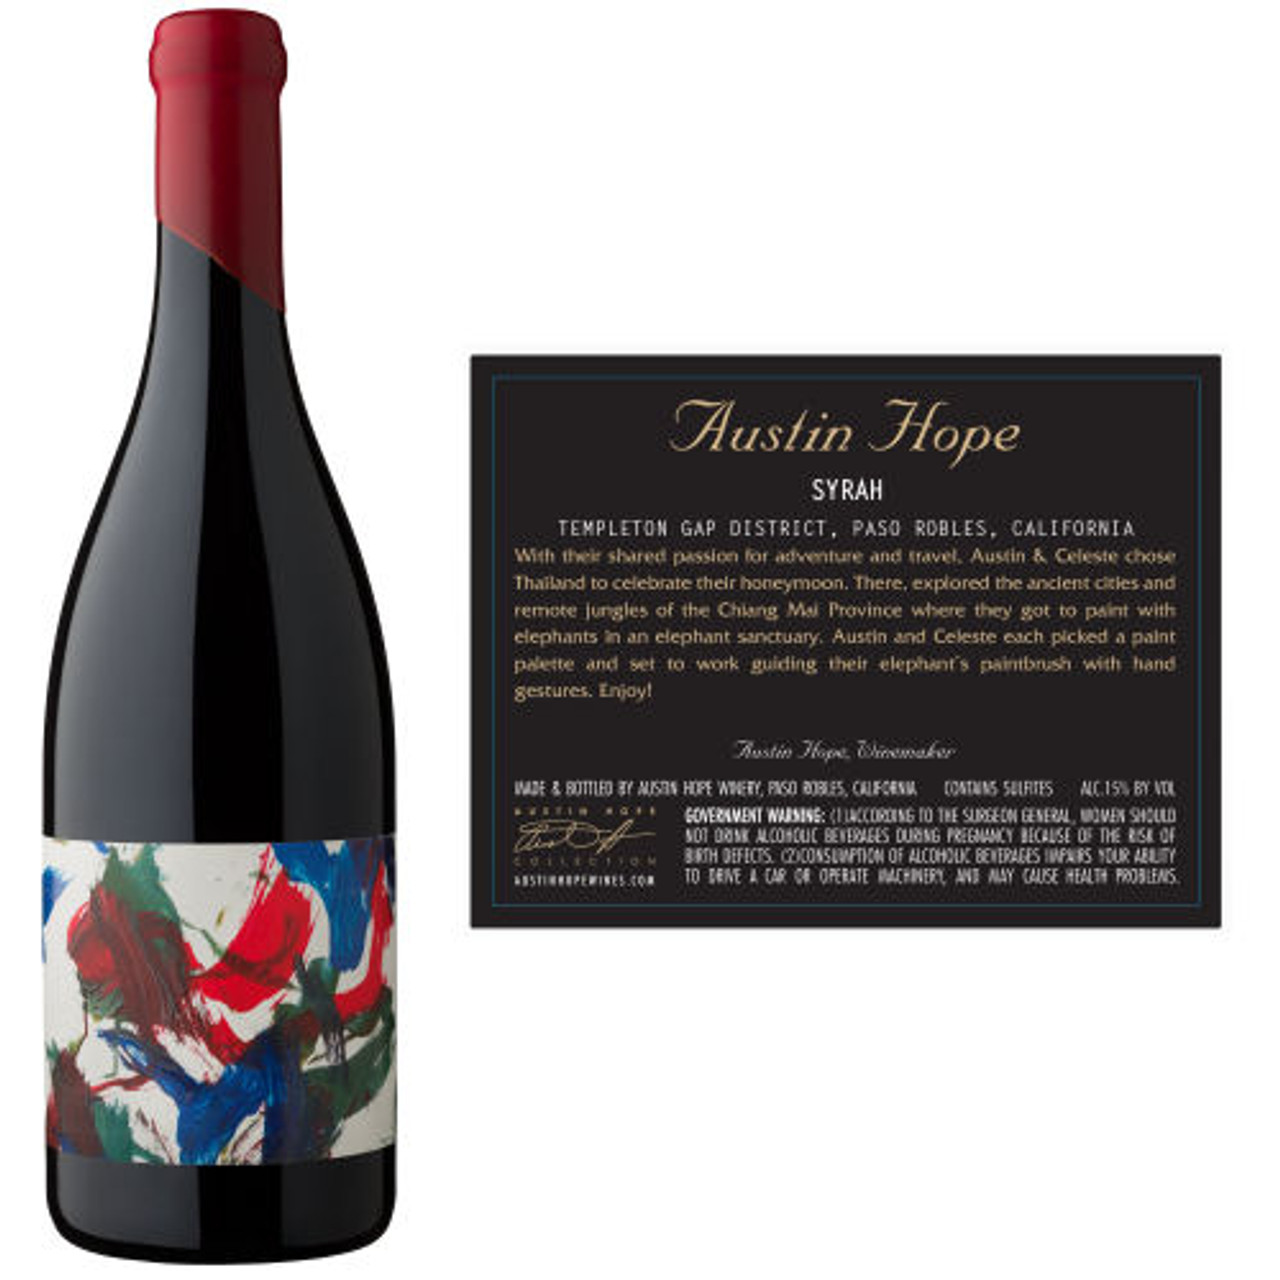 12 Bottle Case Austin Hope Templeton Gap District Paso Robles Syrah 2014 w/ Free Shipping